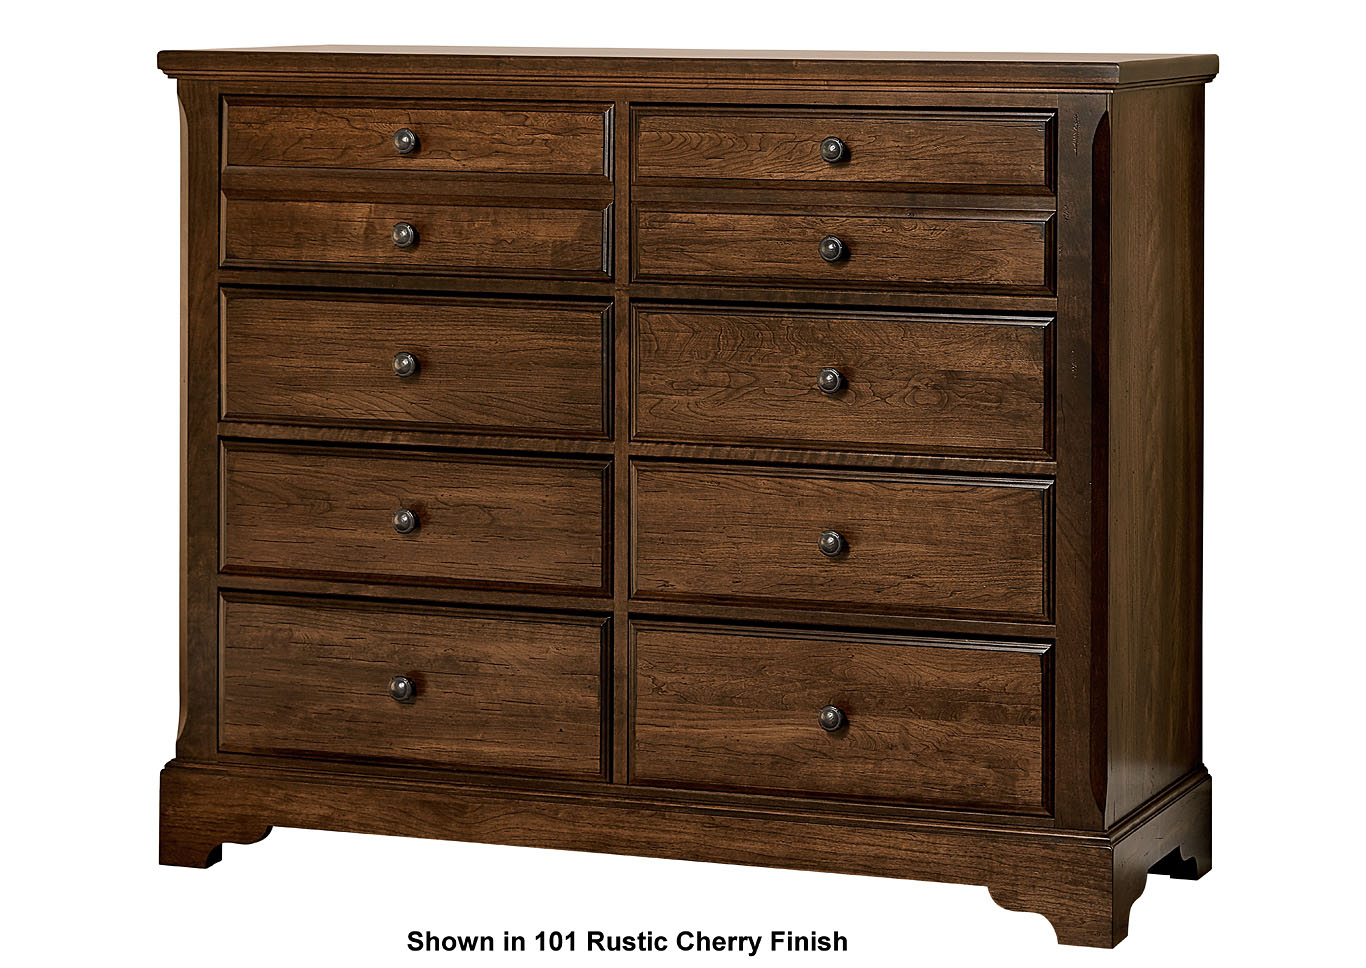 104 - Artisan Choices Dark Cherry Villa Media Dresser - 8 Drawer,Vaughan-Bassett